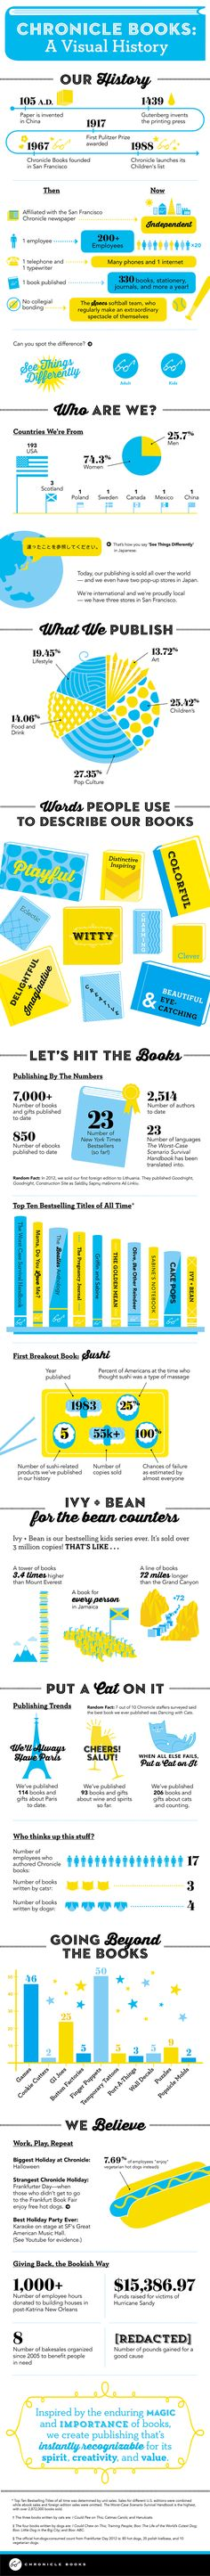 A Visual History of Chronicle Books (infographic)